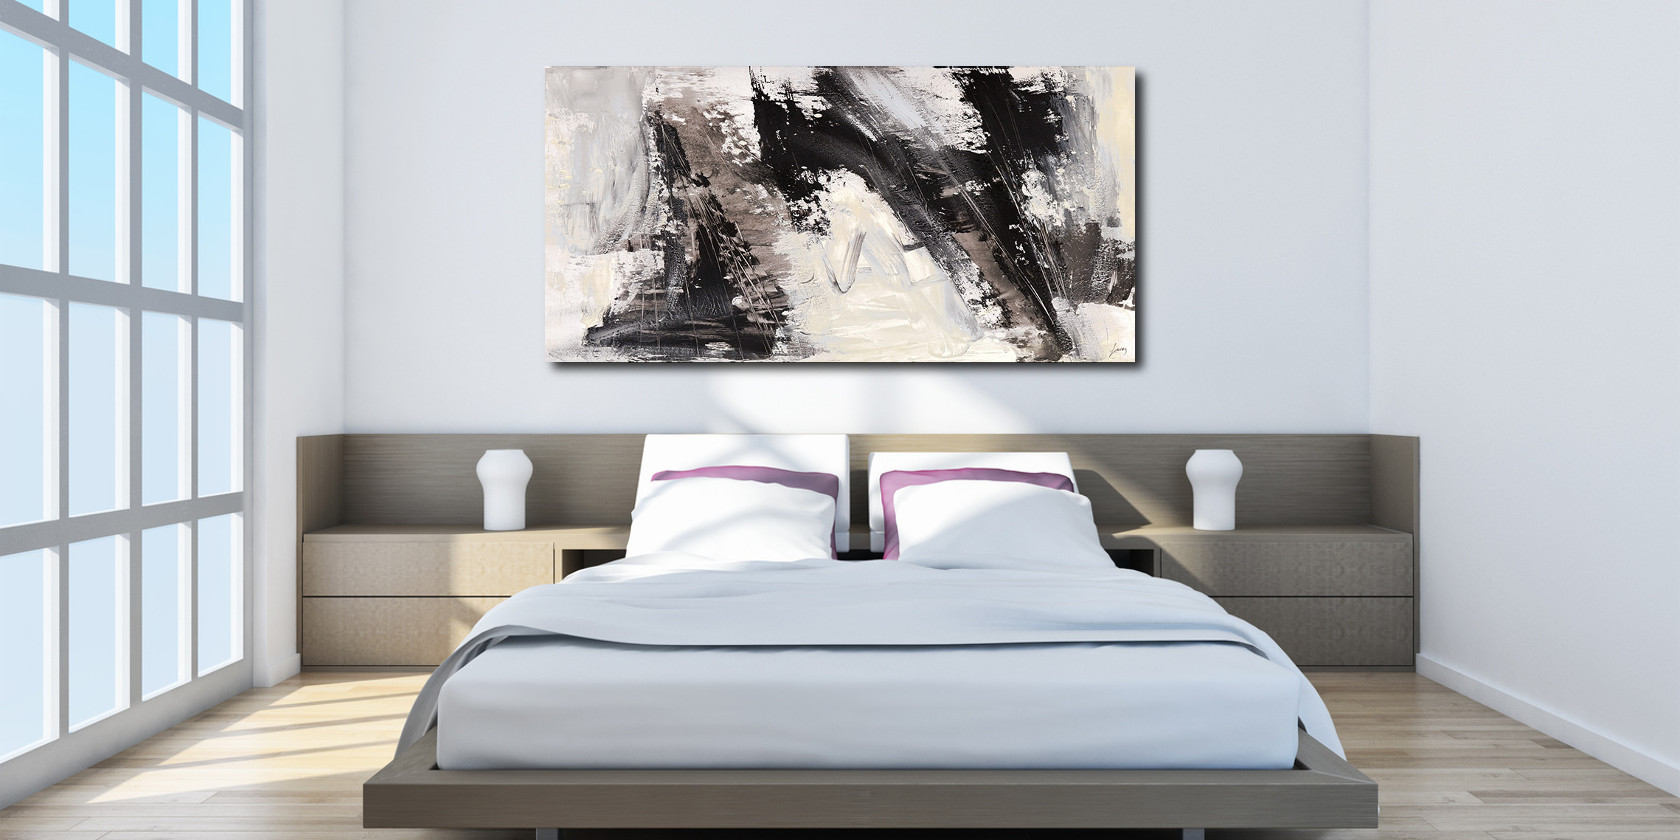 Grif & Graf: Modern frames and canvas paintings, wall art, home decor